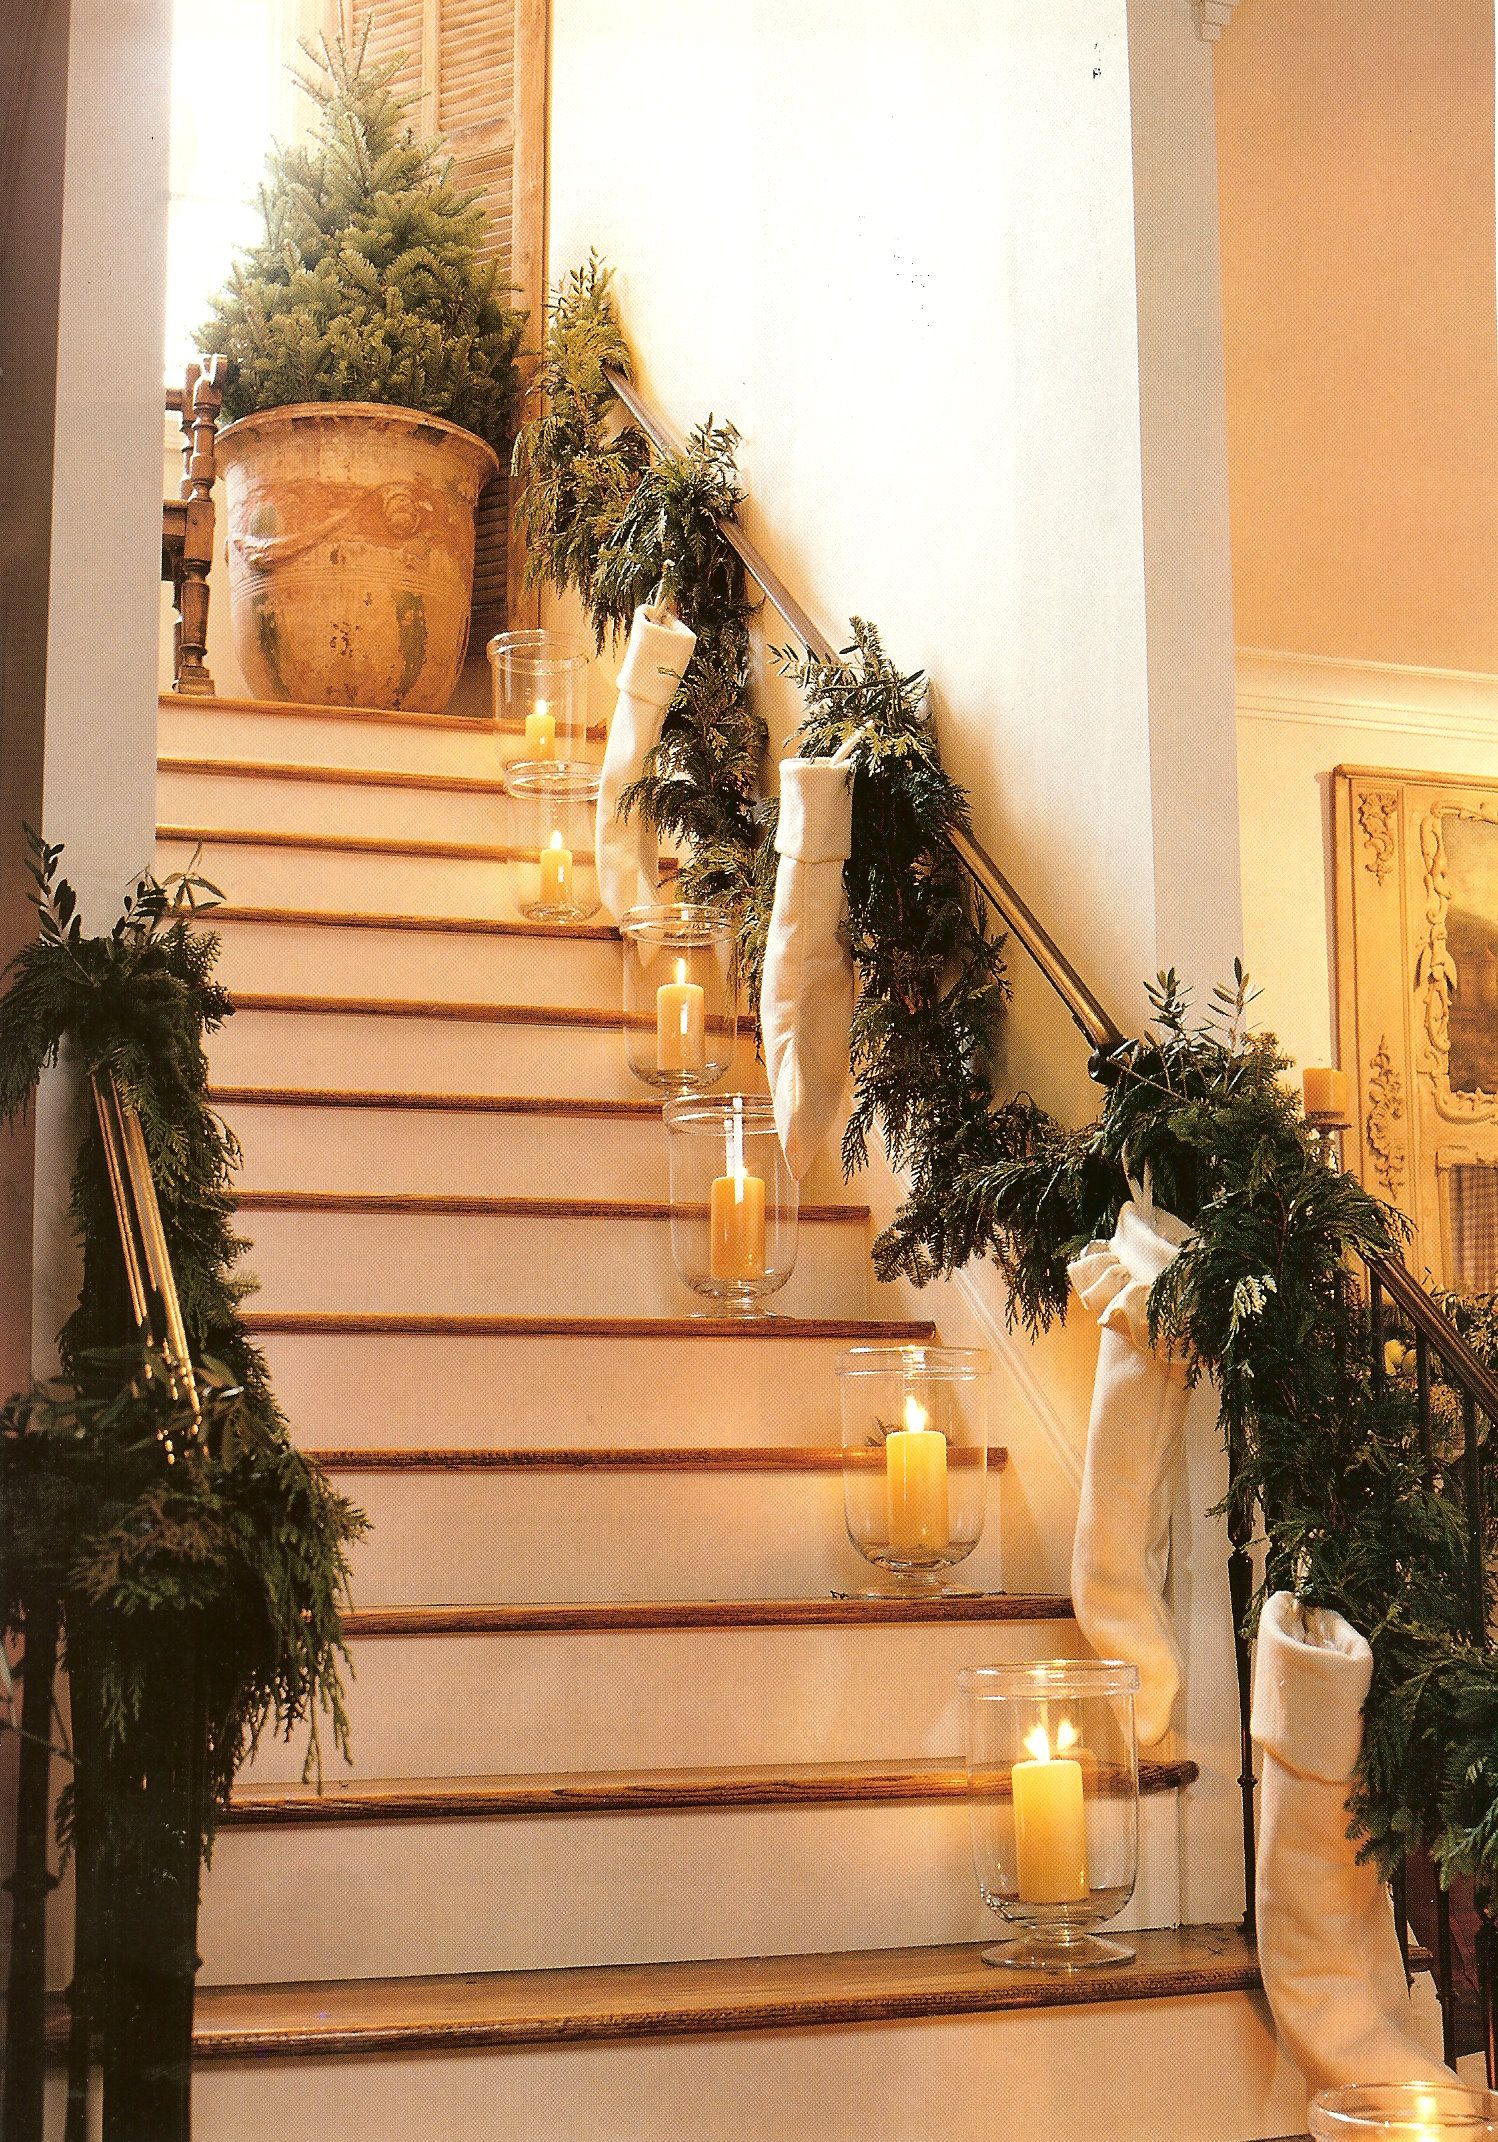 Candles on the steps and the stockings hung on the stair - Christmas decorations for stair rail ...